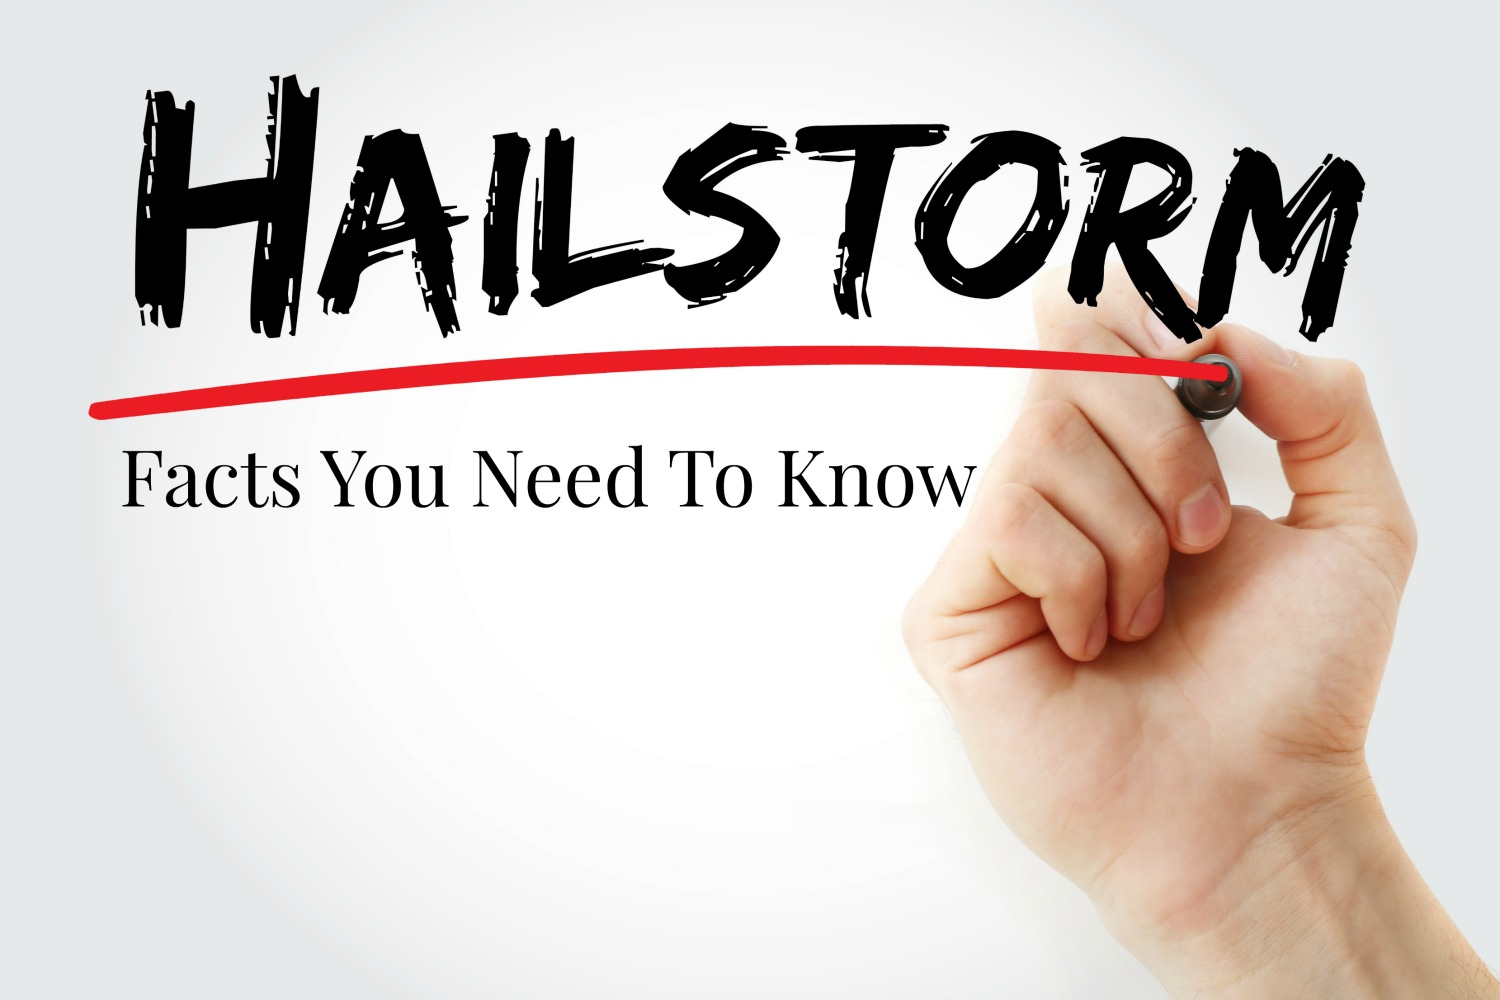 Hailstorm Facts You Need To Know